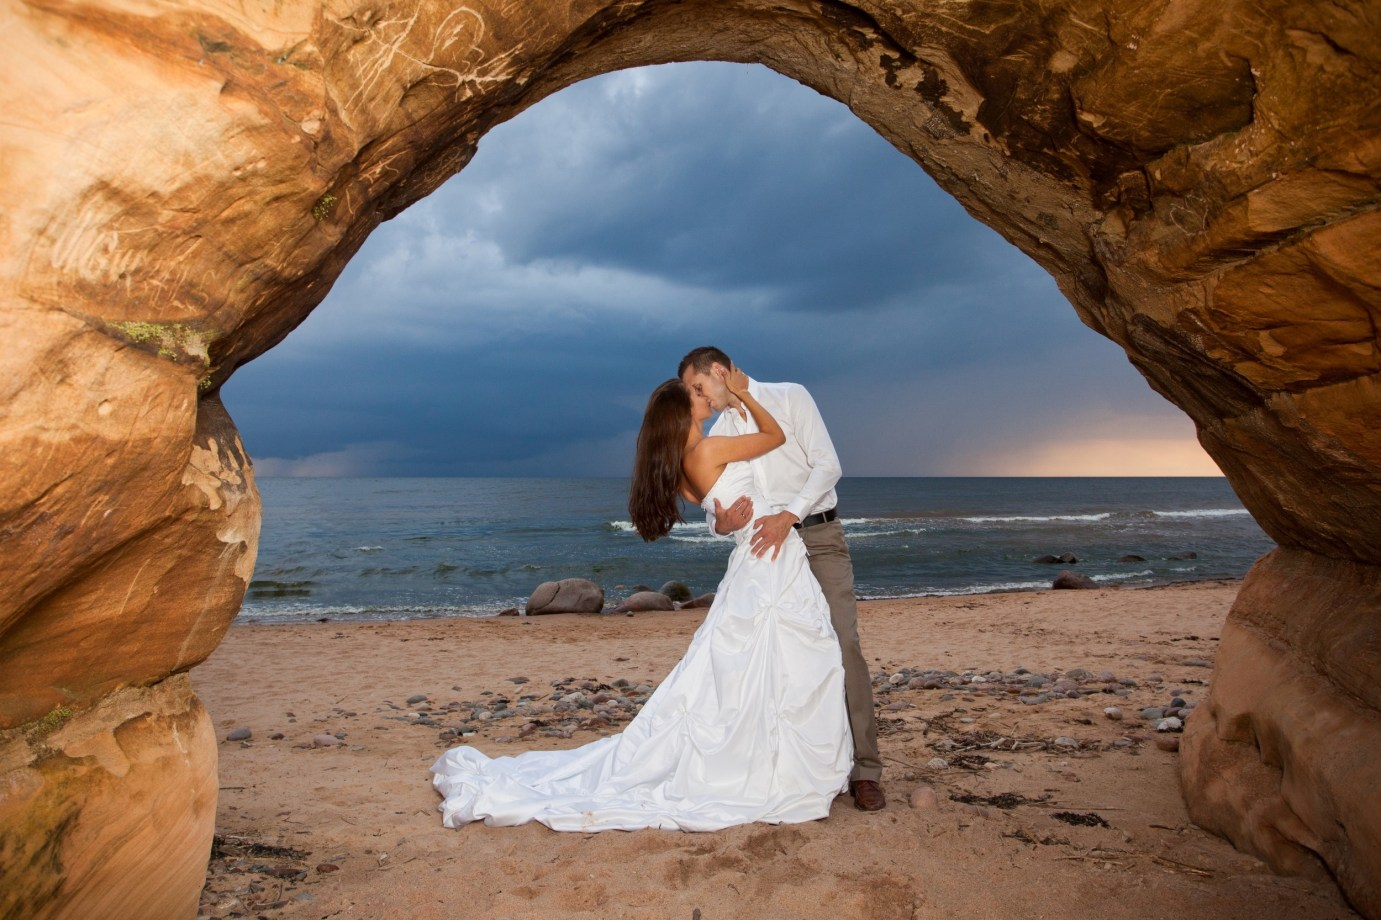 PART 1 WEDDING BEACH COUPLES PORTRAITS COLOUR AND BLACK AND WHITE 007261 (Custom)